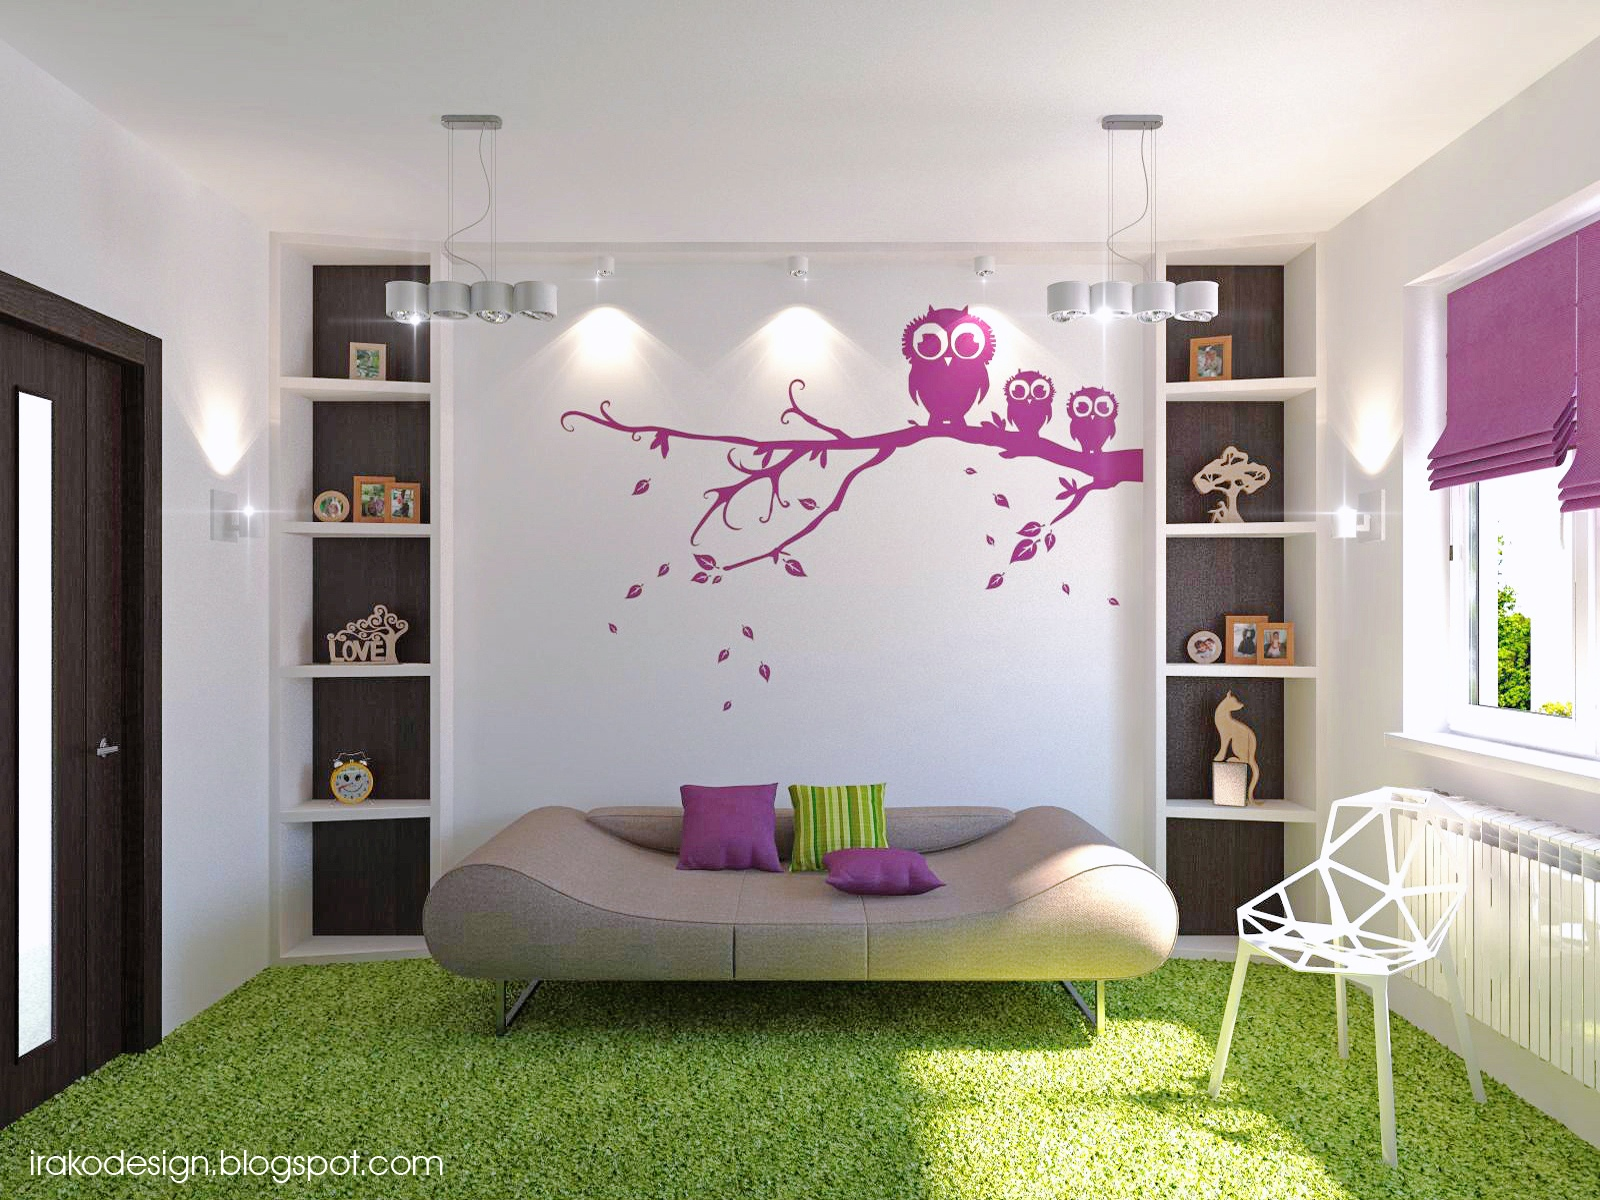 Purple Bedroom Designs For Girls. Purple Bedroom Designs For Girls E